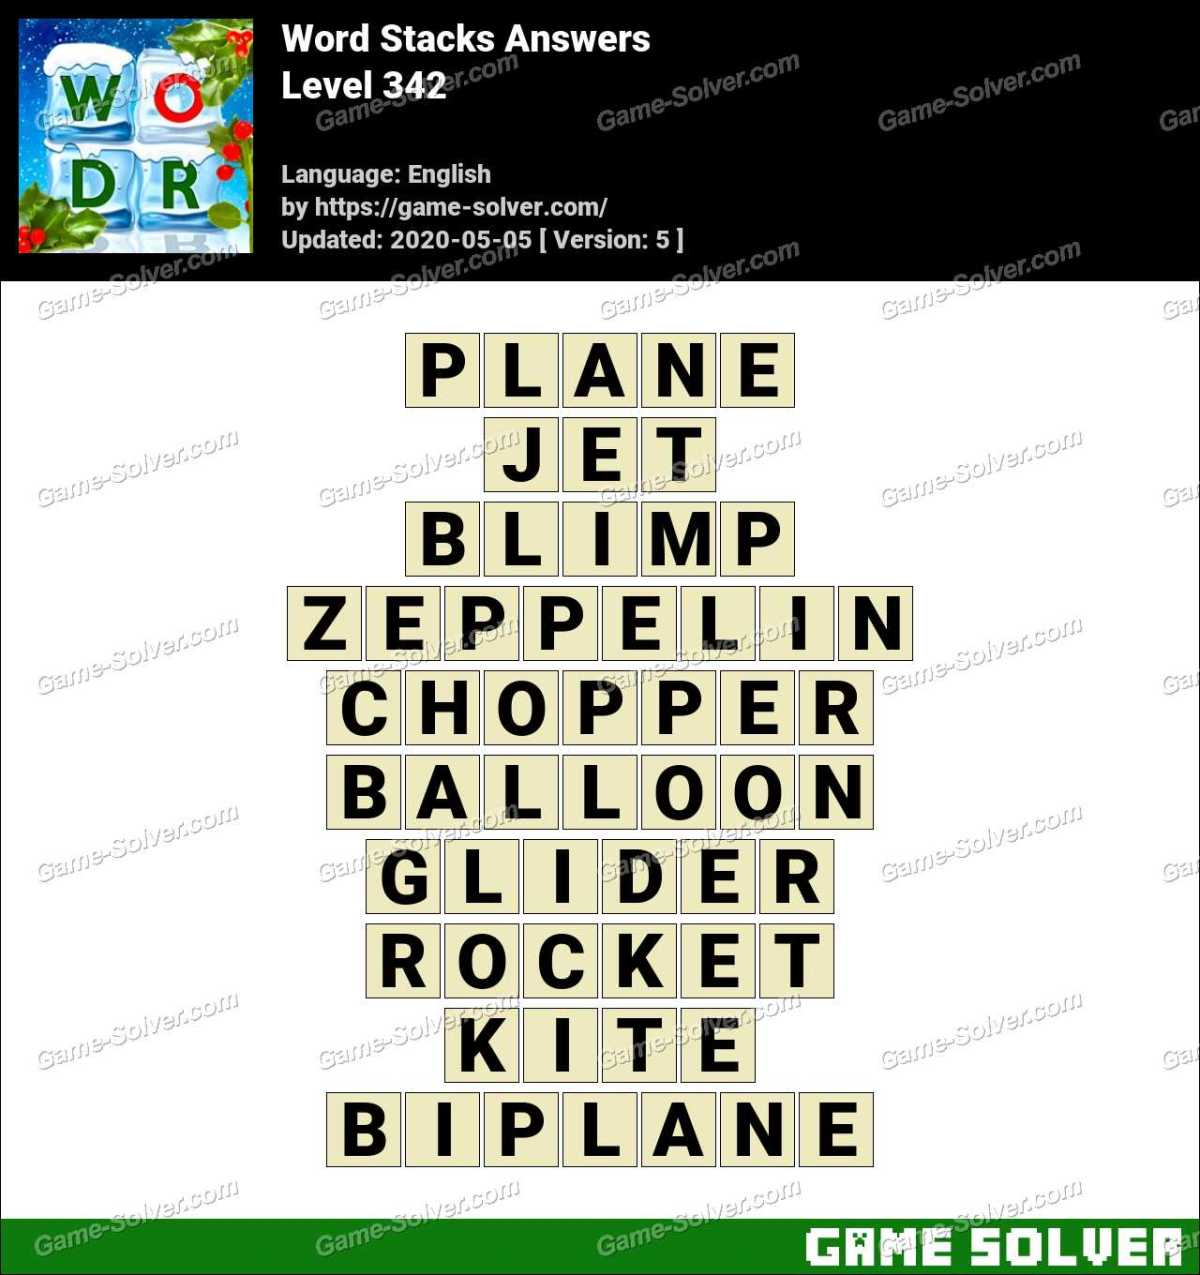 Word Stacks Level 342 Answers